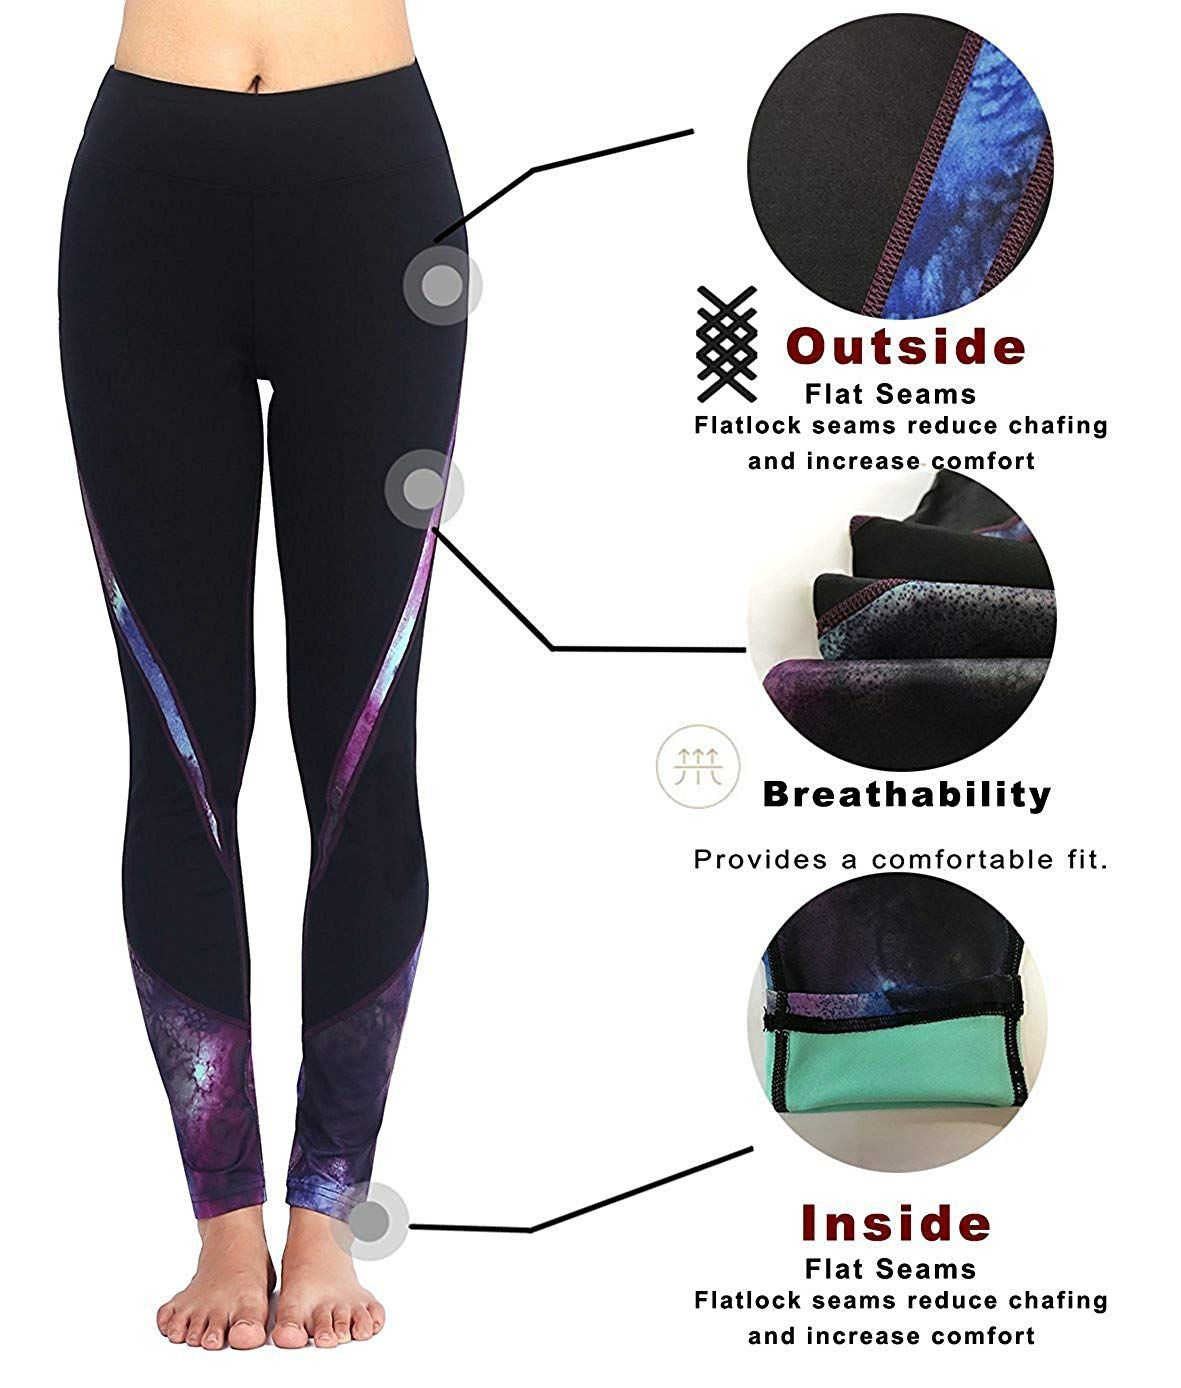 ee8b799600b59 Sugar Pocket Womens Athletic Pants Workout Yoga Leggings Fitness Tights -  Available in 16 different colour patterns. Click the picture to see more  details.